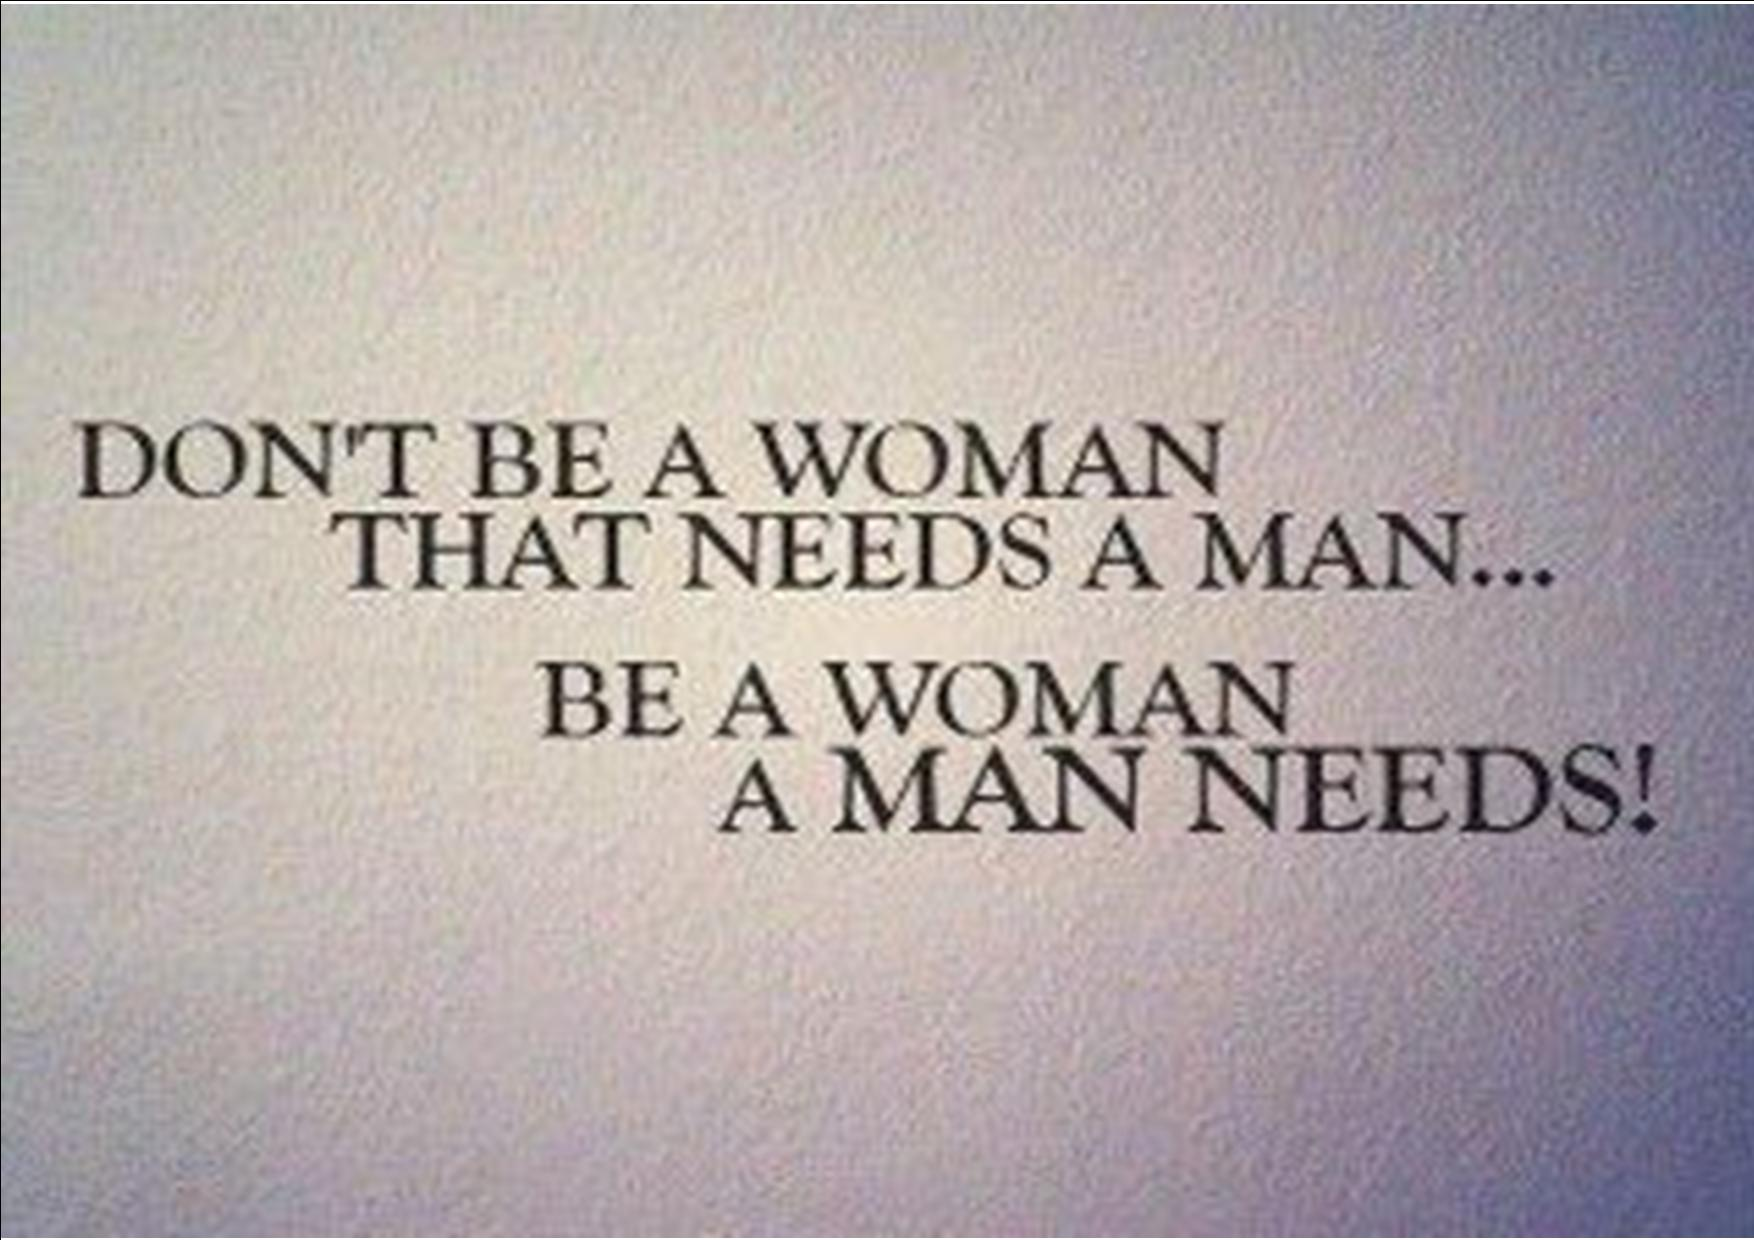 Don't be a woman that needs a man... Be a woman a man needs